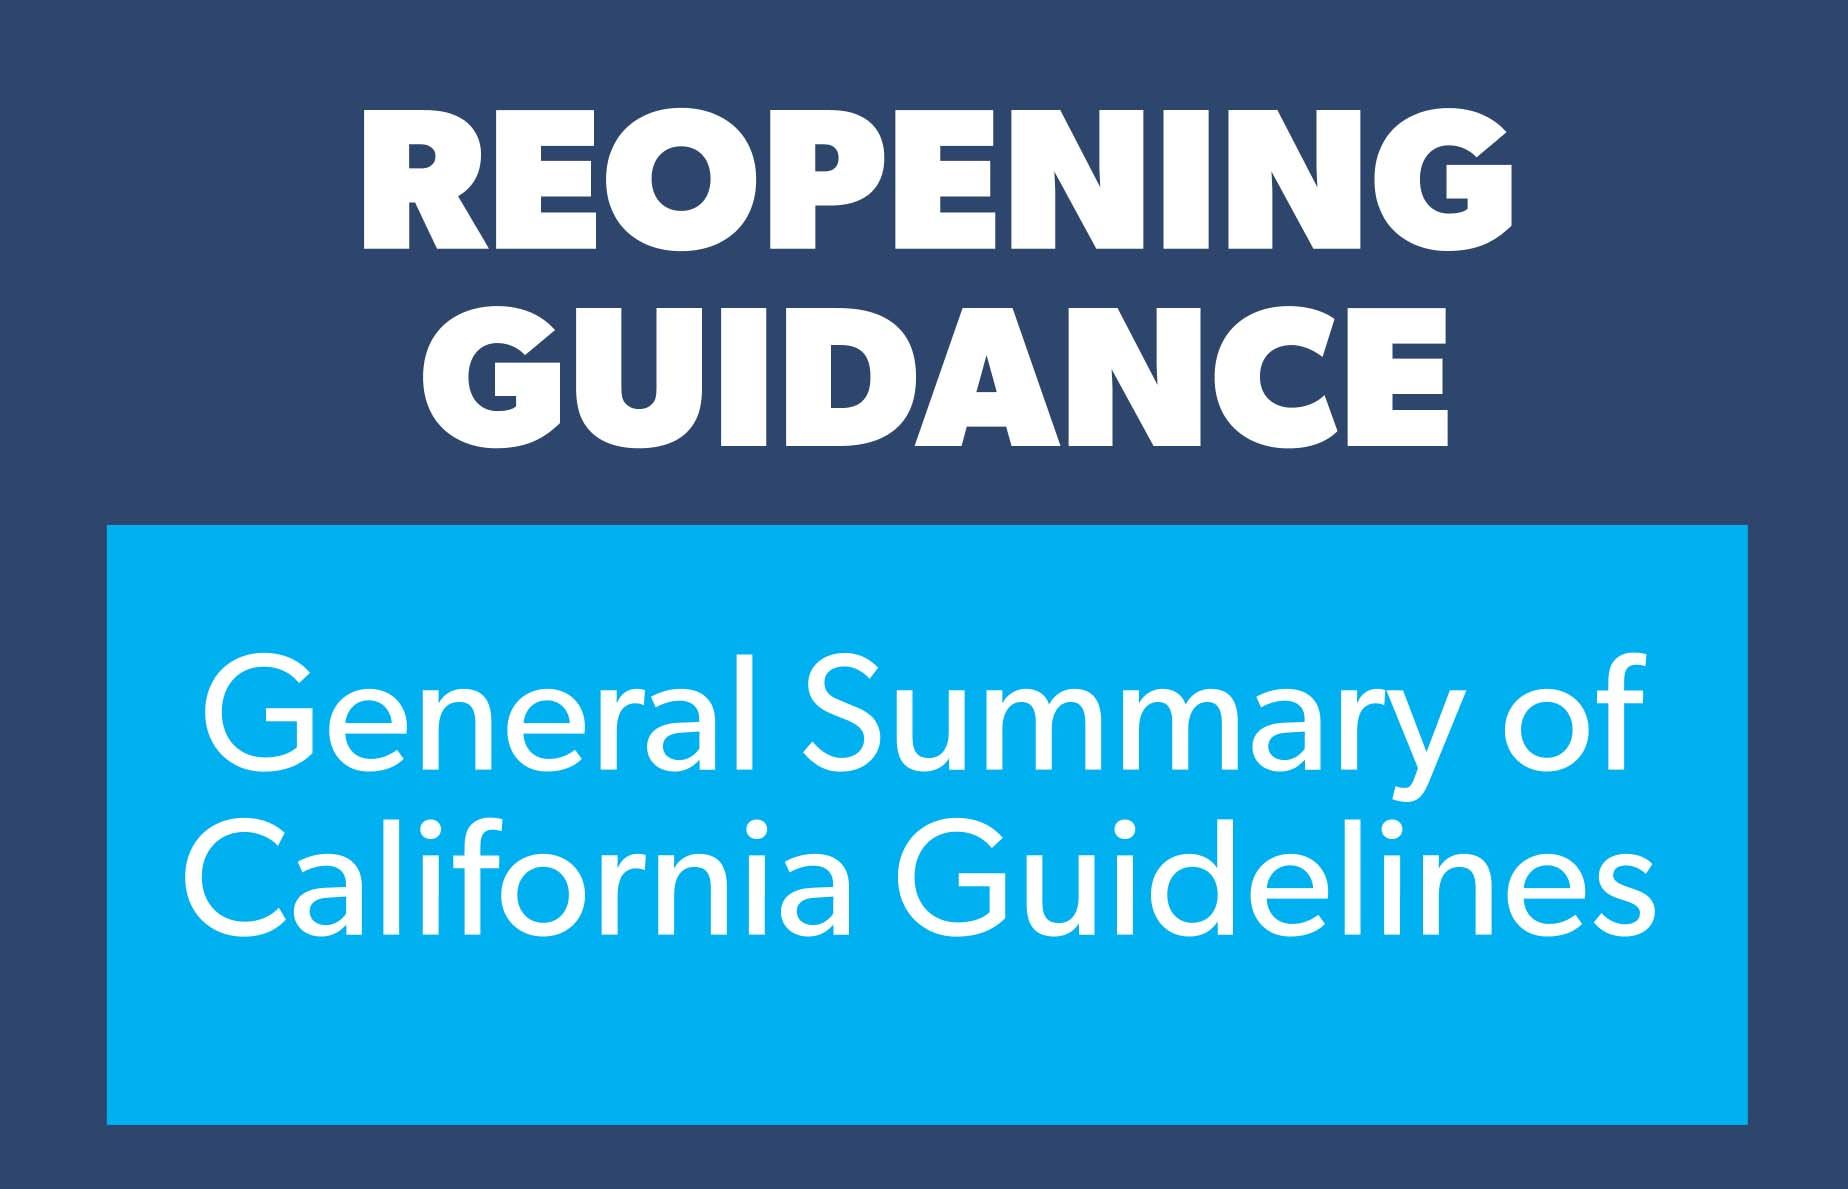 Guidance summary